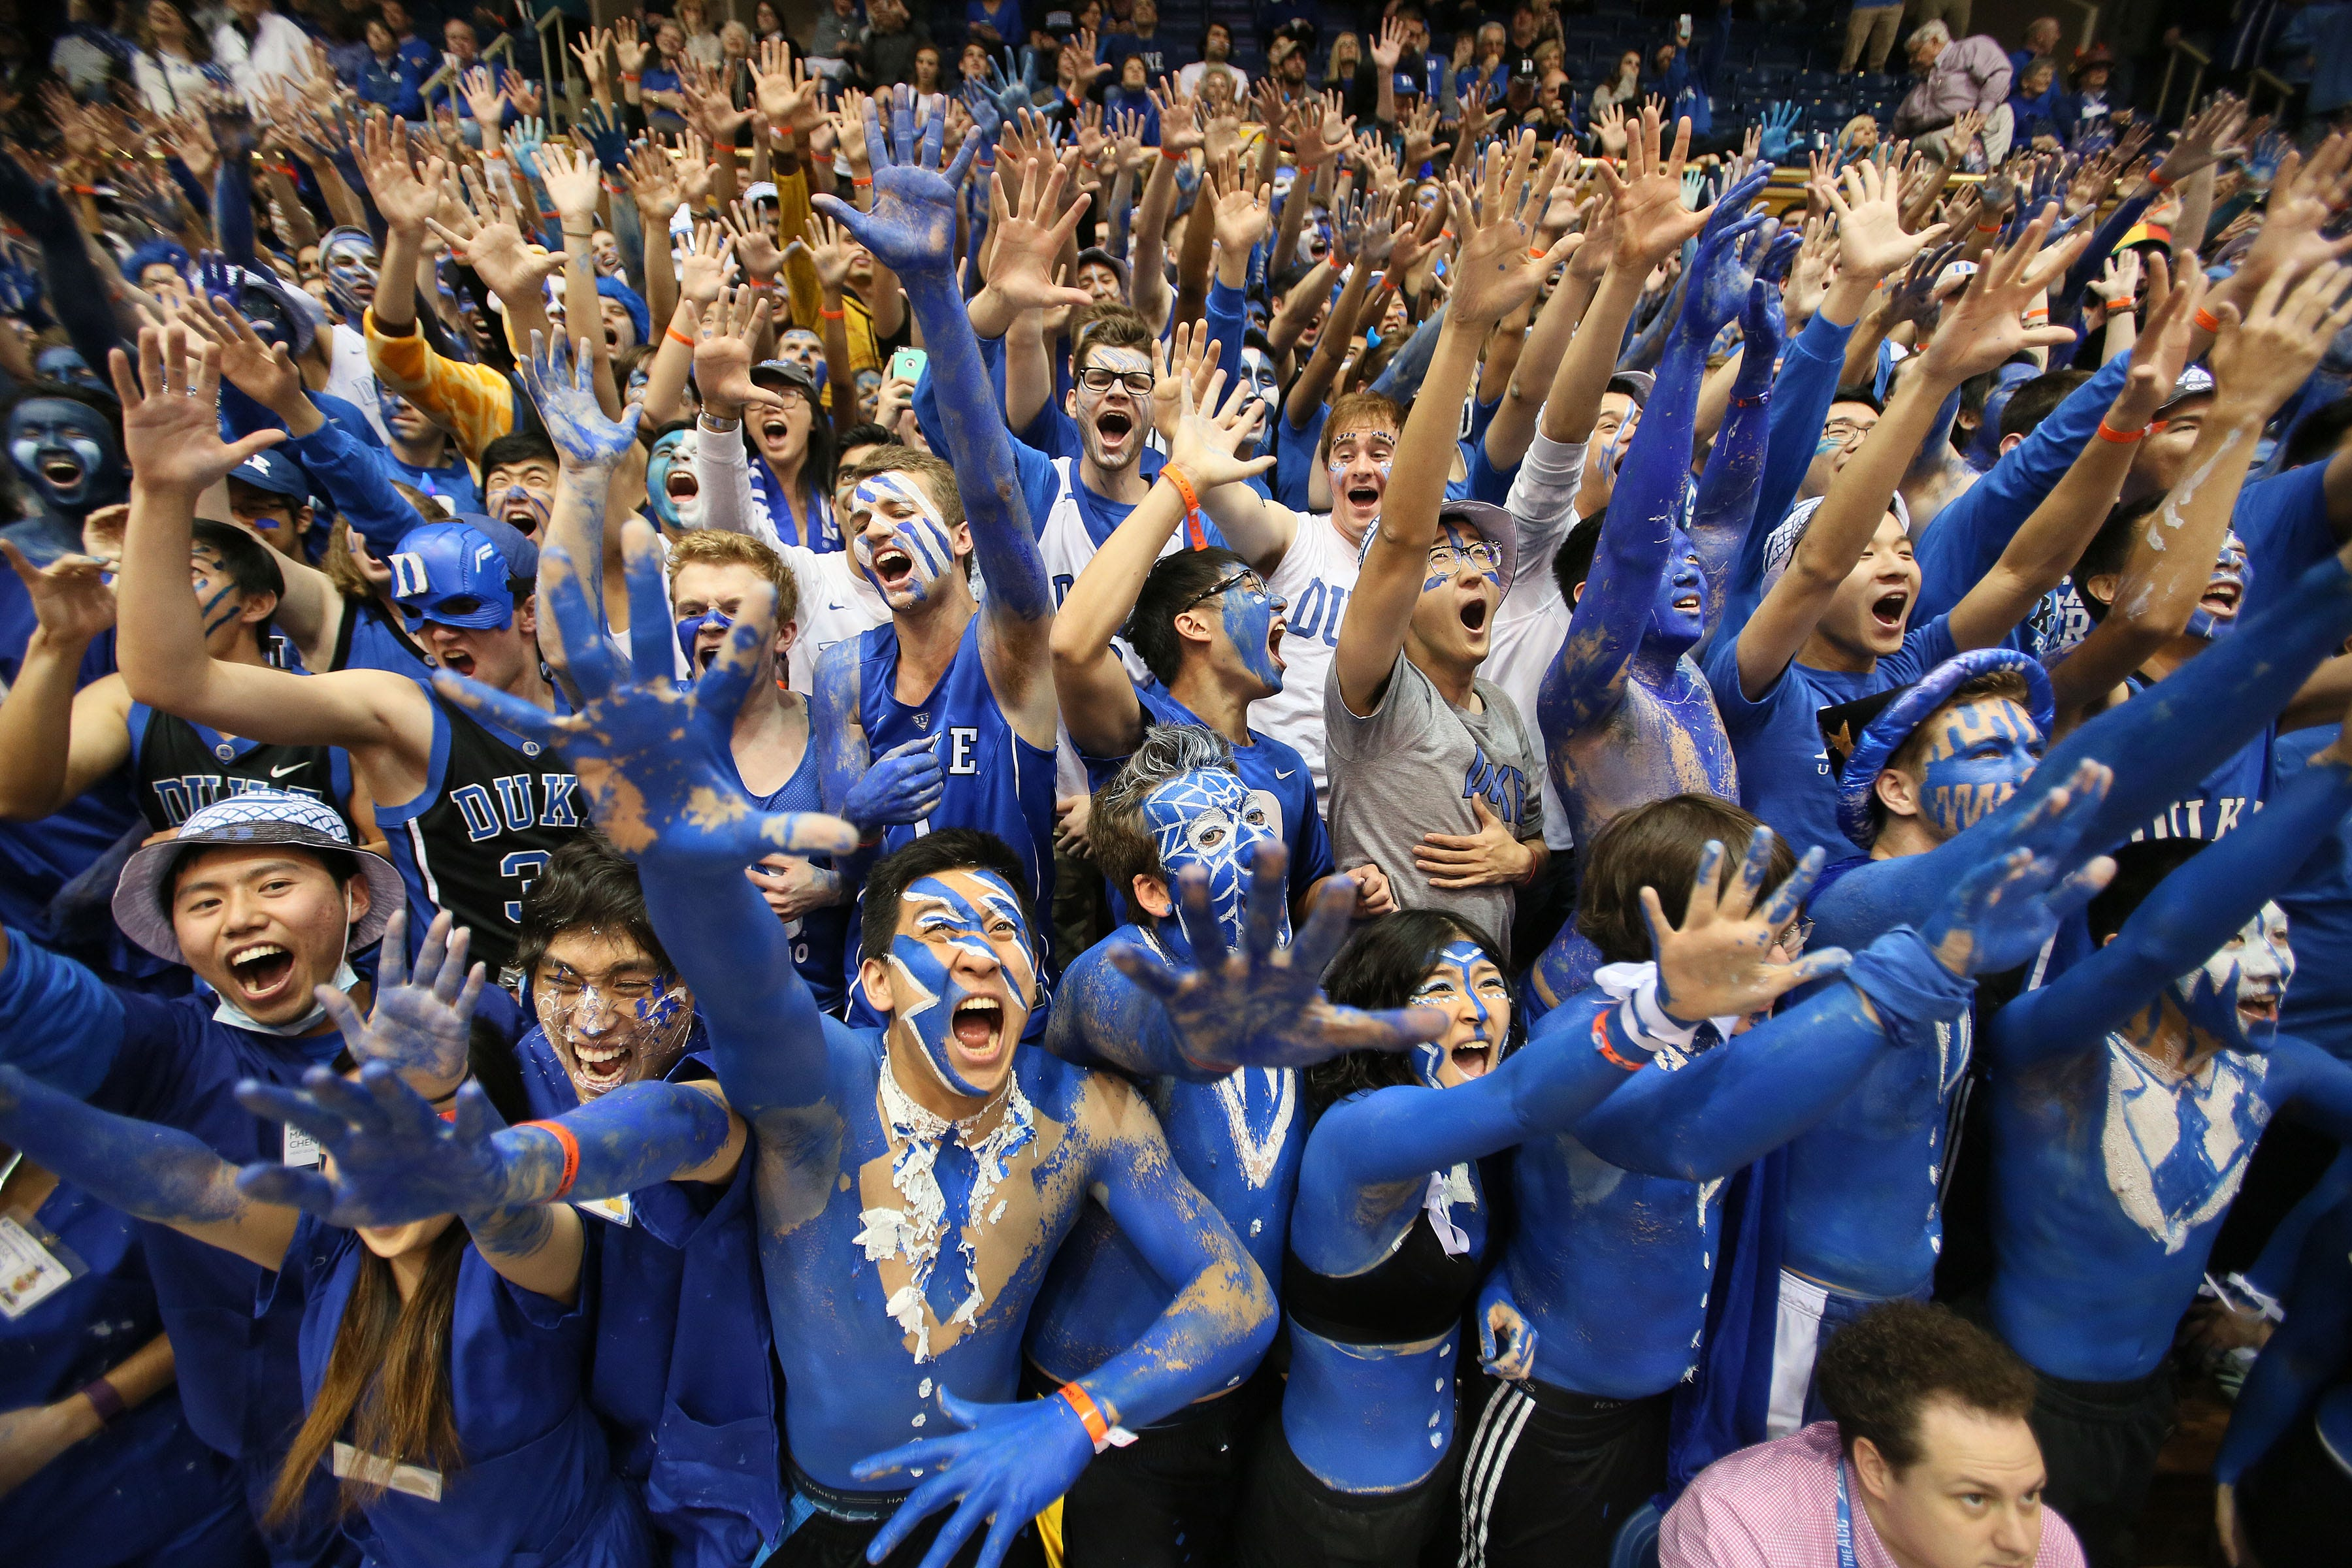 Cameron Crazies will be back to see Coach K in his final season